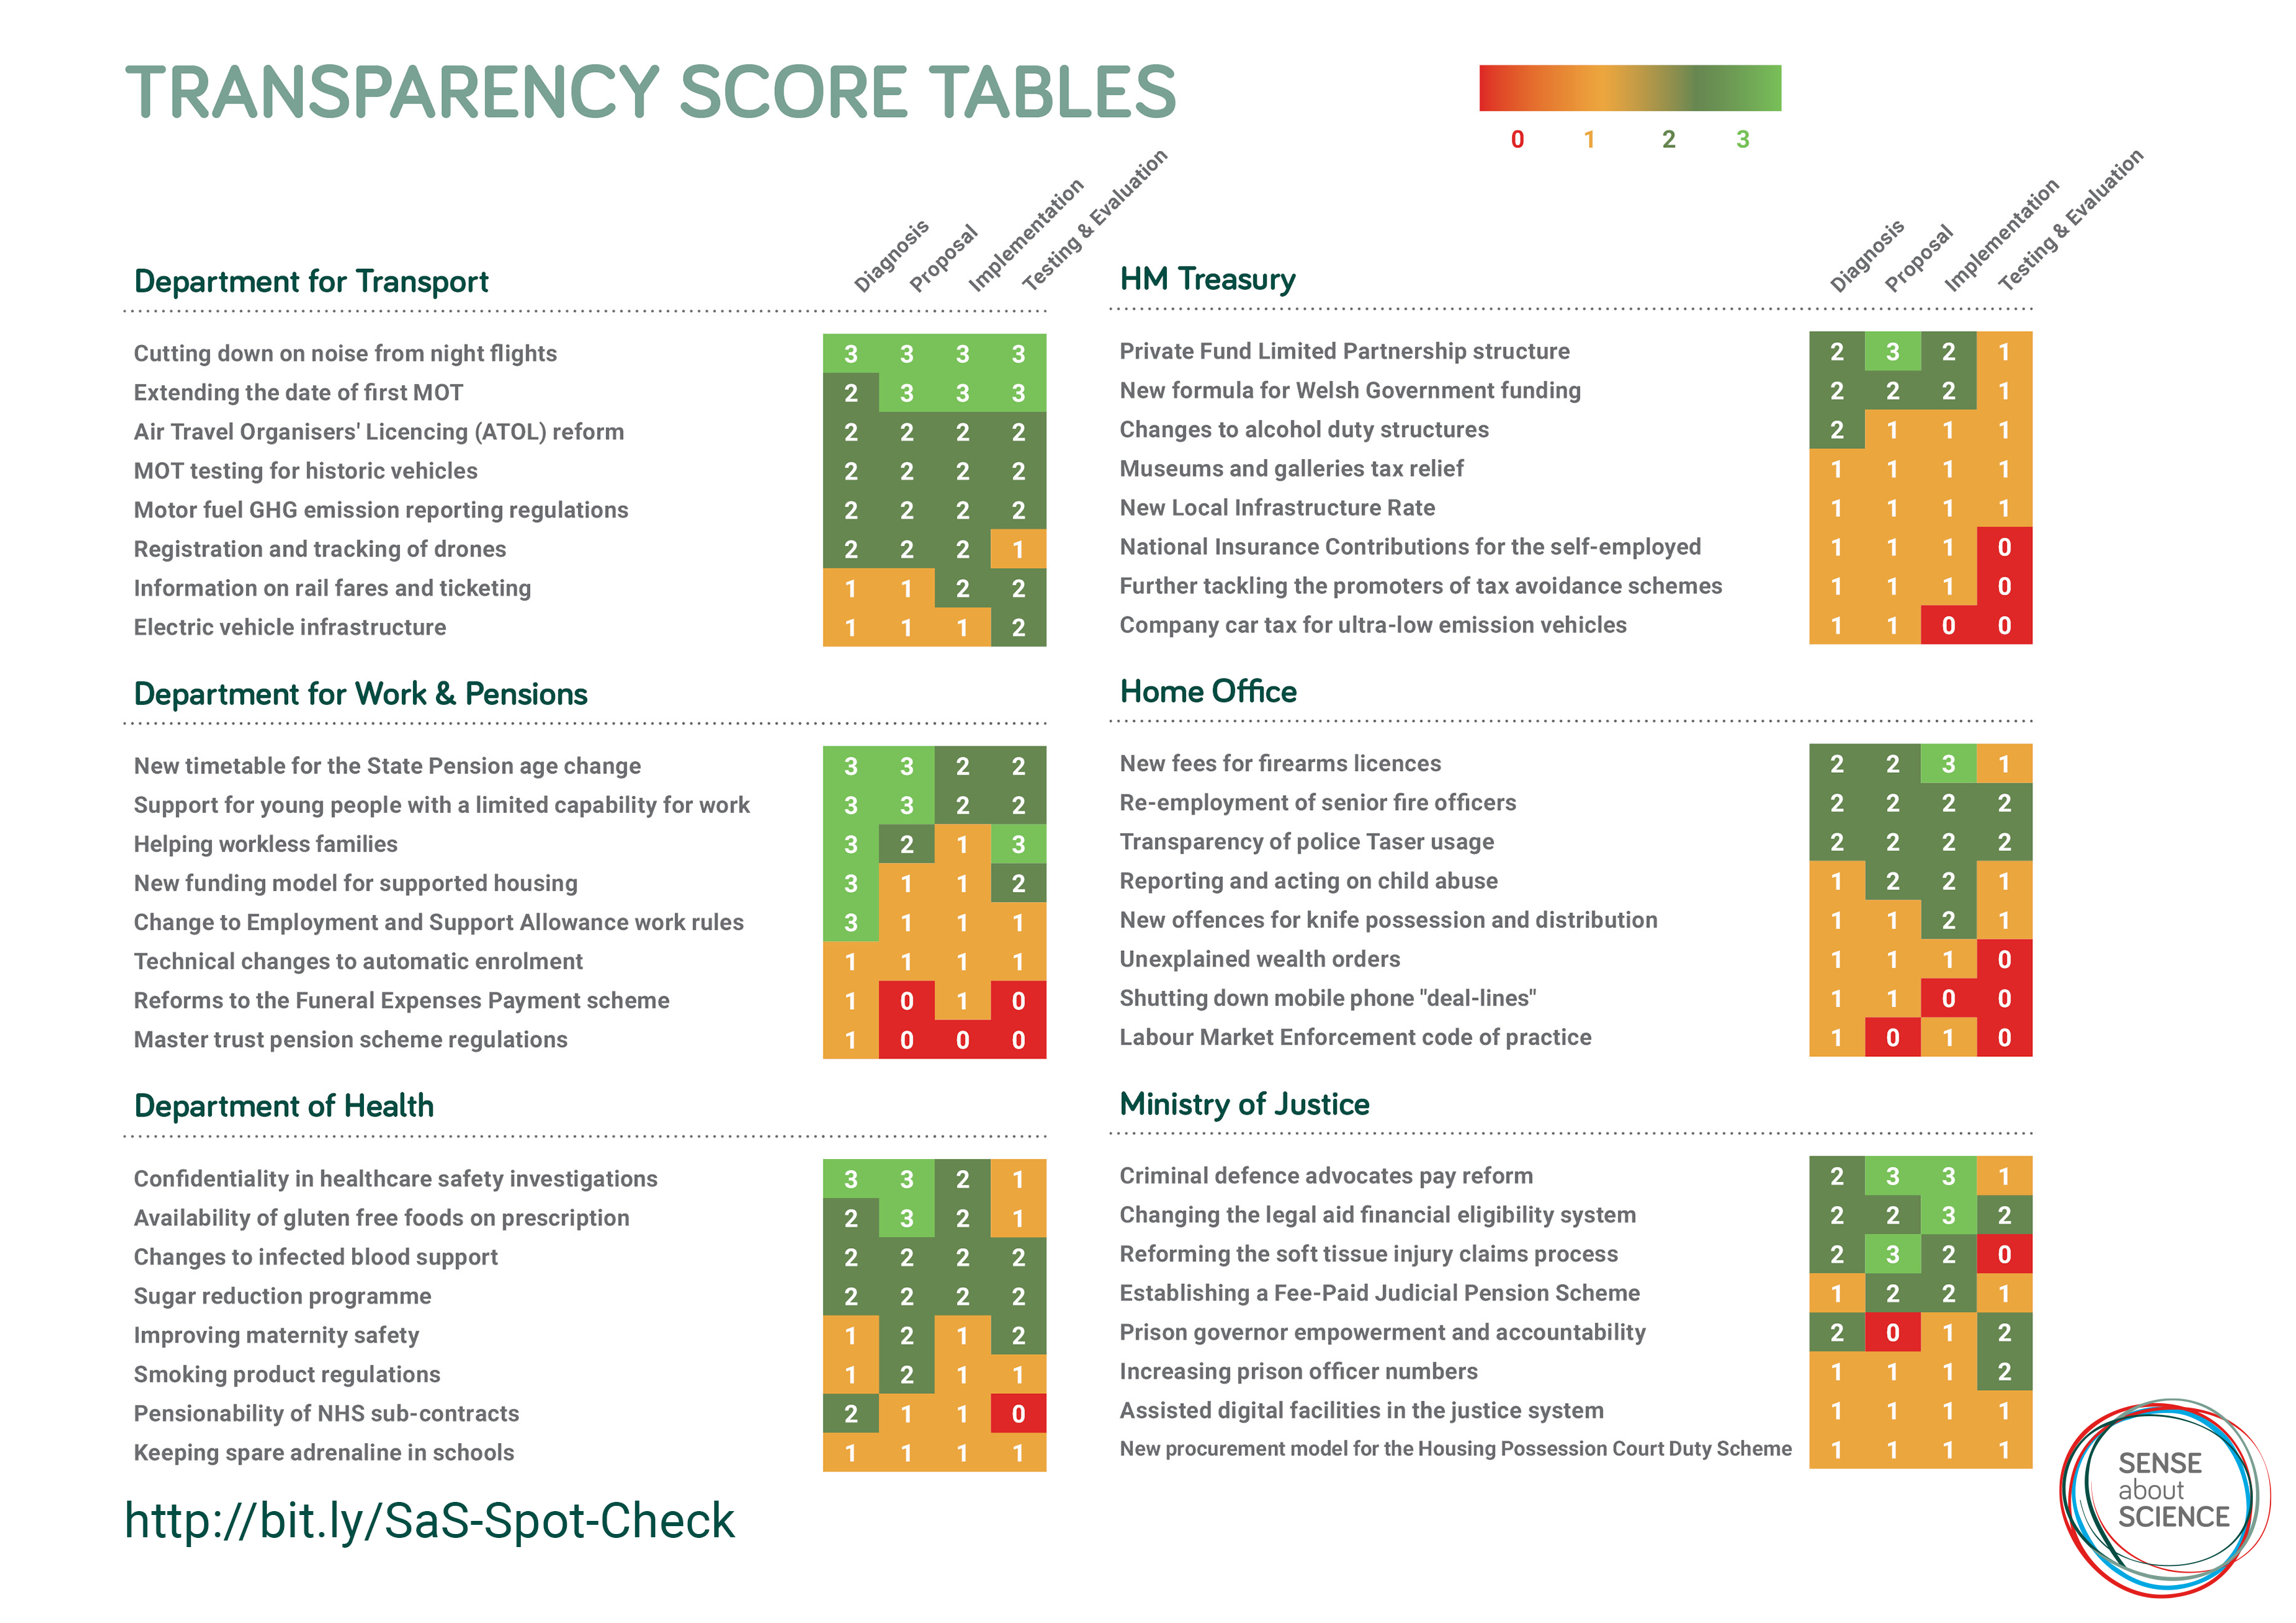 Transparency score tables second page